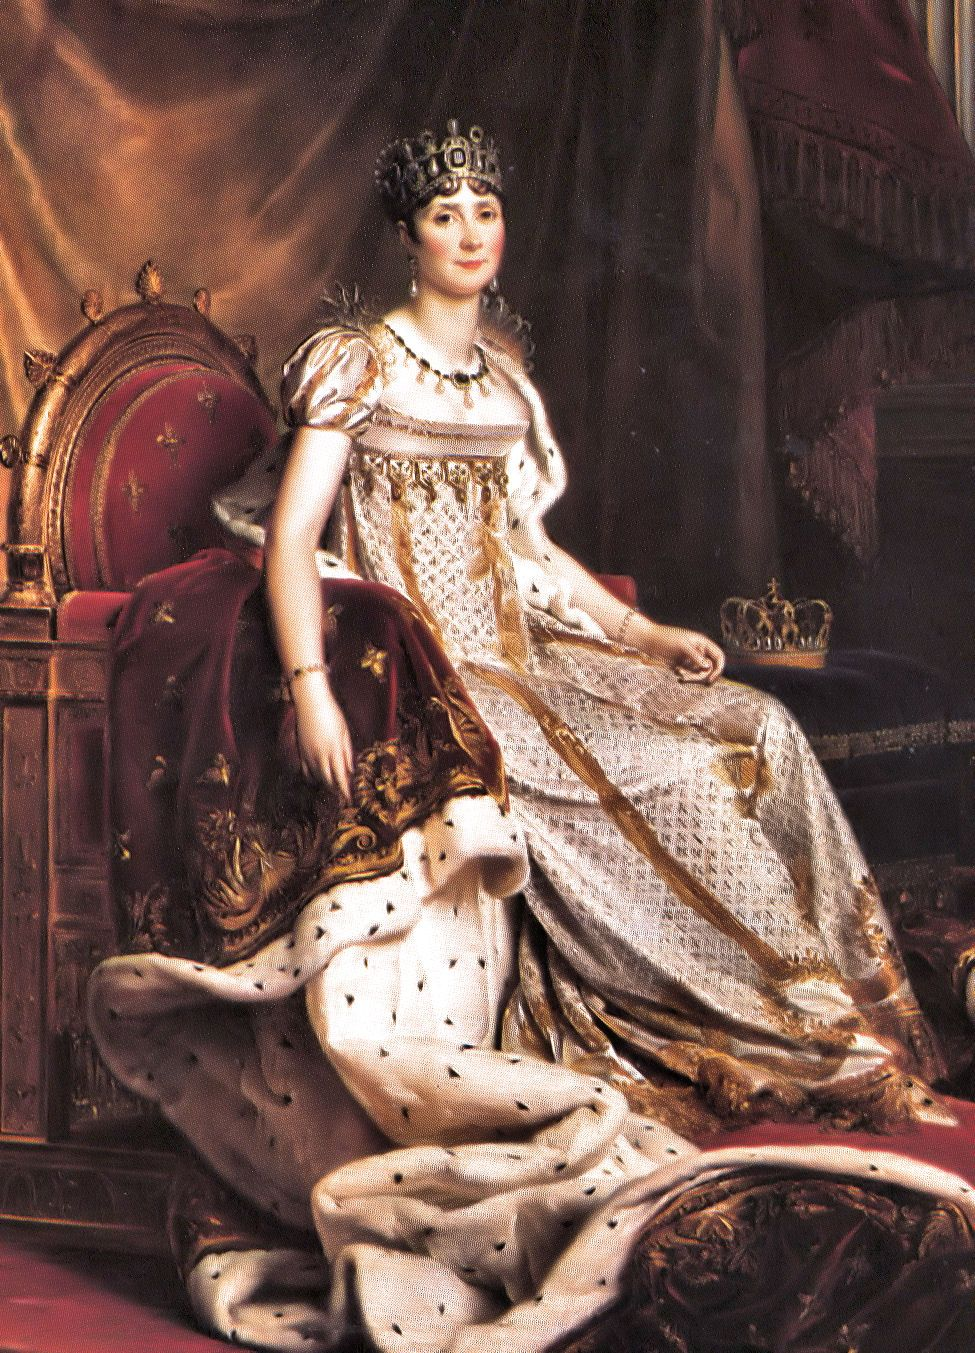 Josephine Bonaparte is painted wearing an elaborate, empire style dress that is fitted at the waist with puffed, cap sleeves. The Industrial Revolution made textiles readily available and many materials were printed. It is said that her extensive wardrobe alone stimulated French industry.